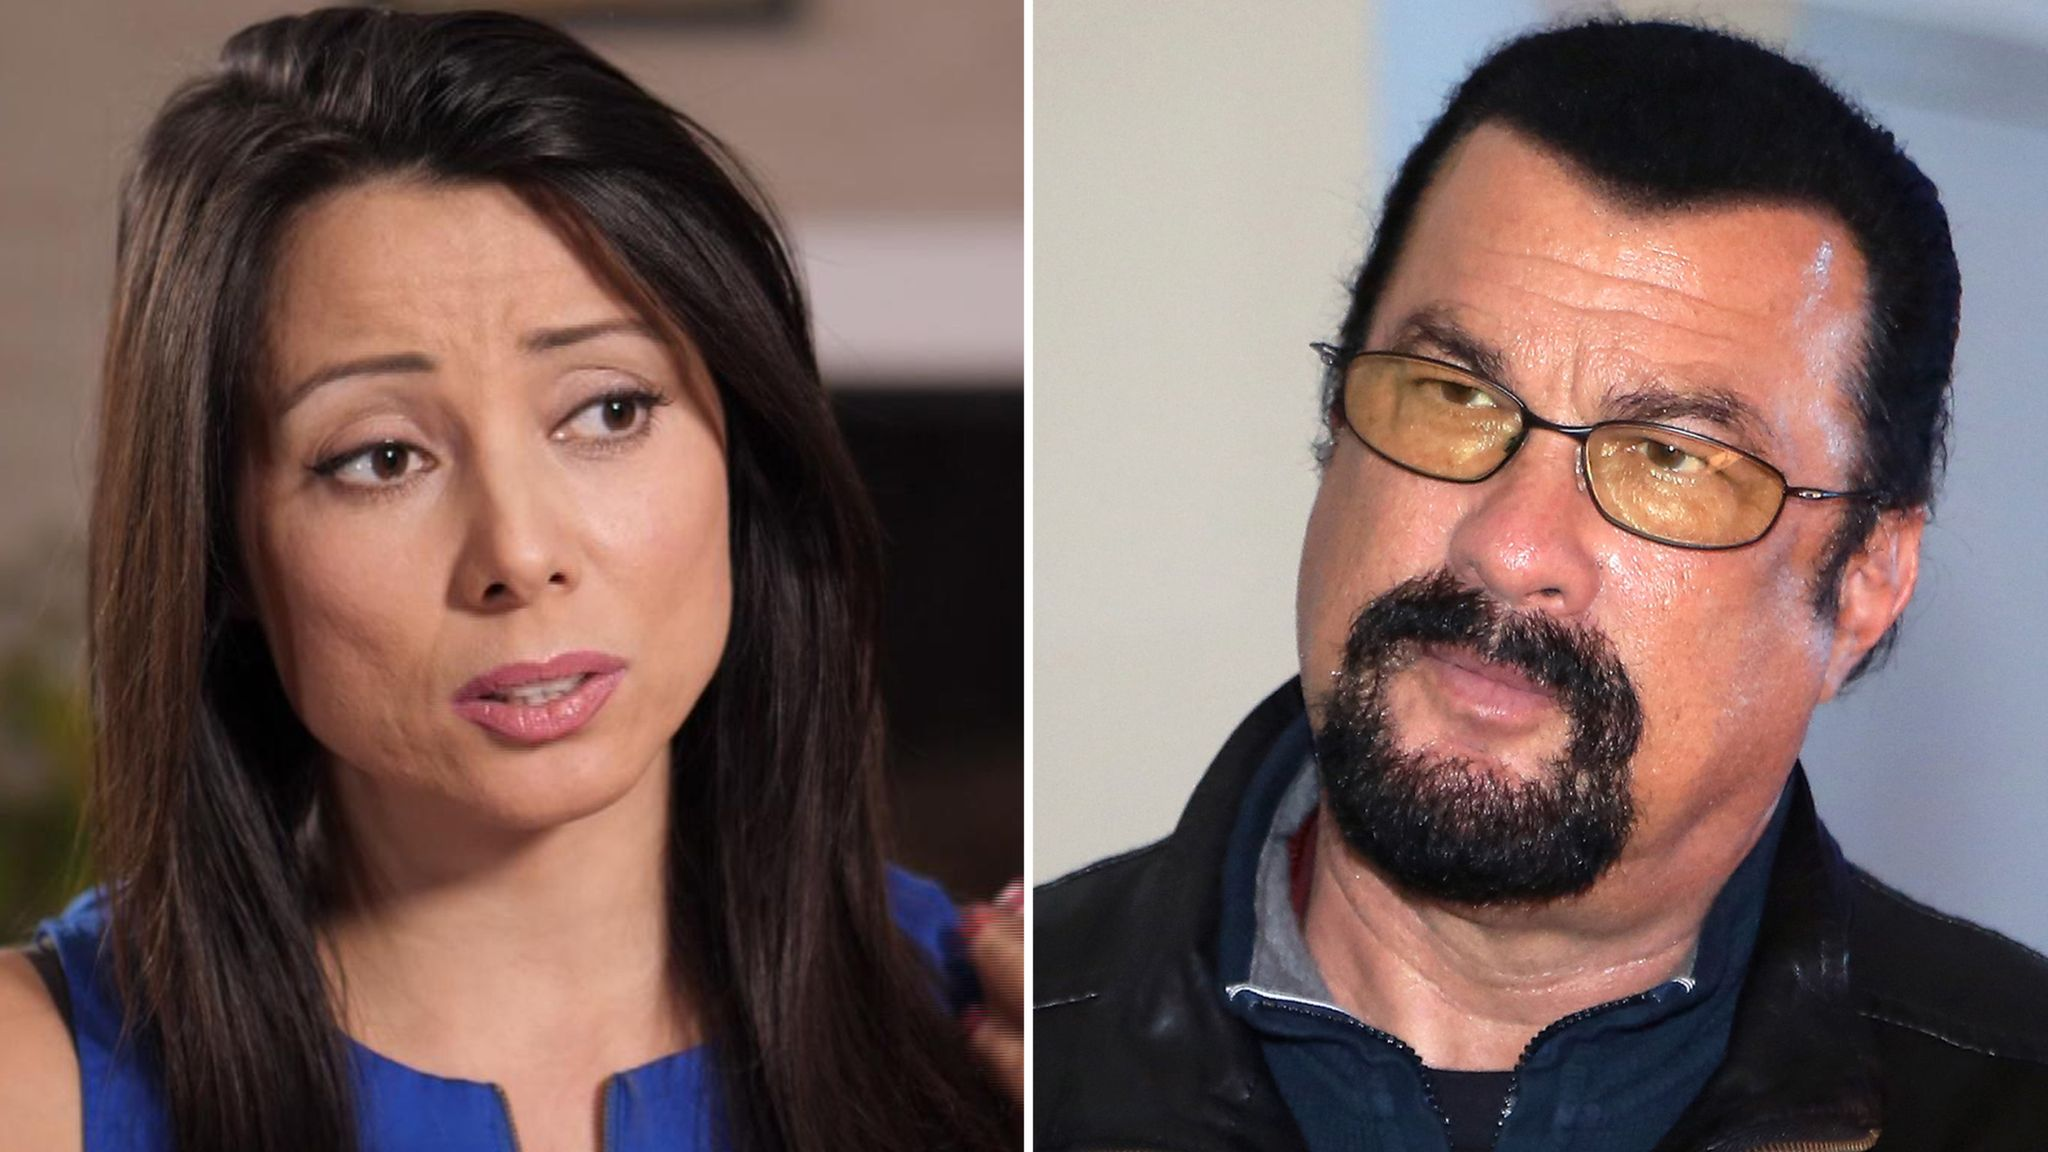 Bond Girl Alleges Steven Seagal Sexually Assaulted Her After 2002 Audition Ents Arts News Sky News